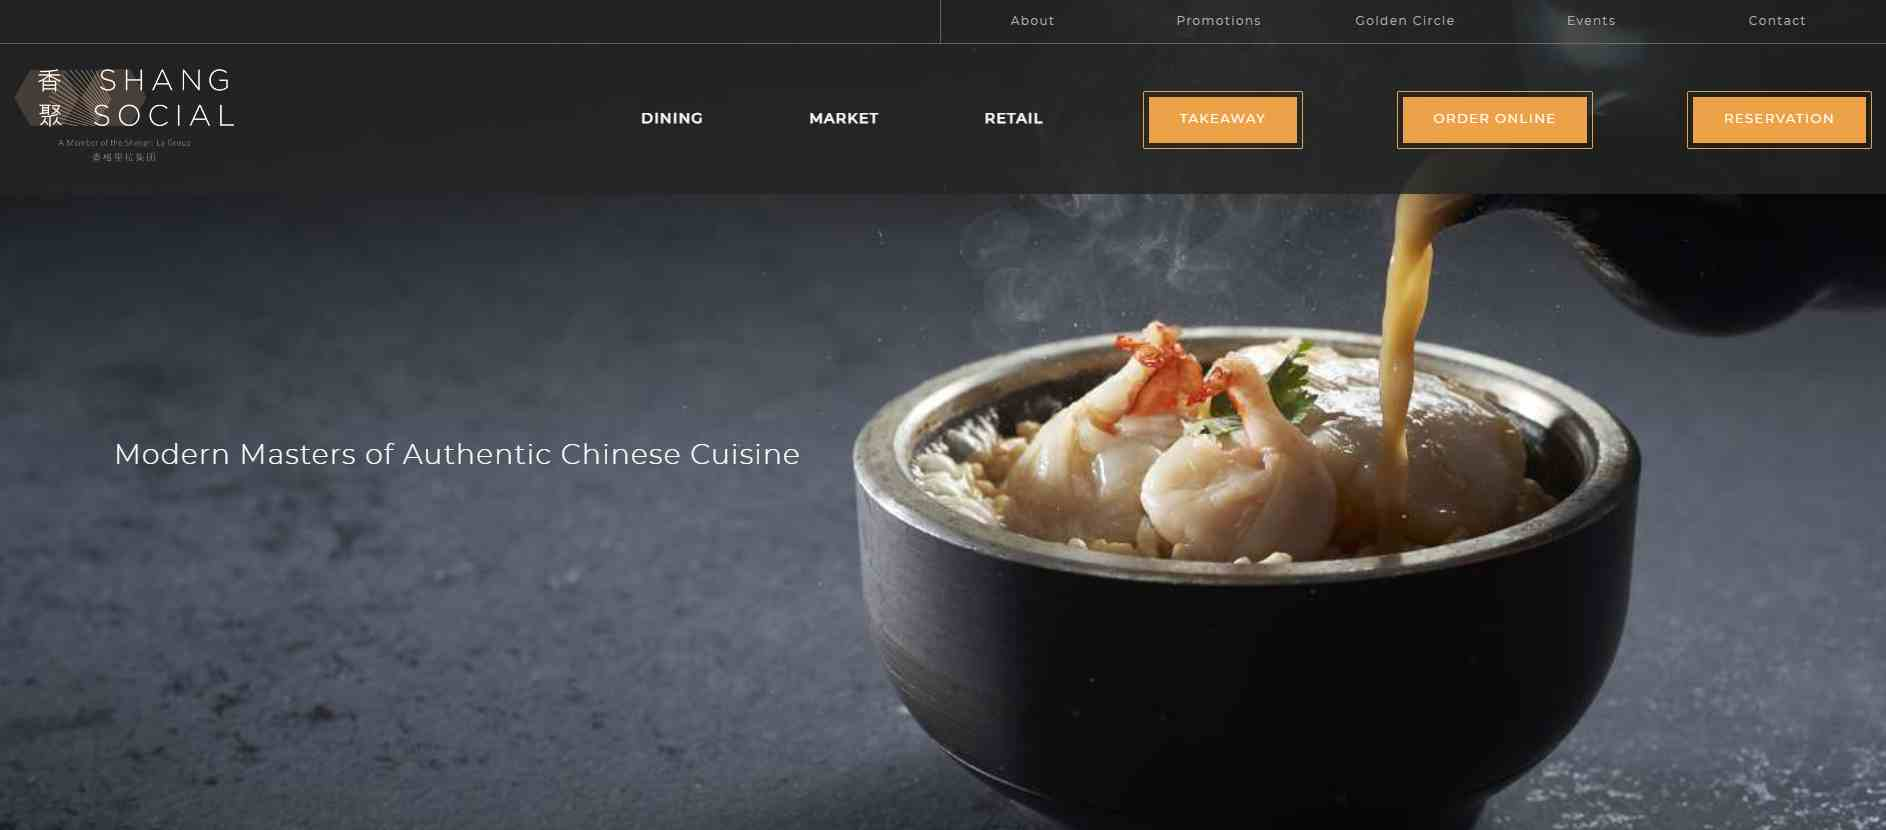 shang social Top Chinese Restaurants in Singapore